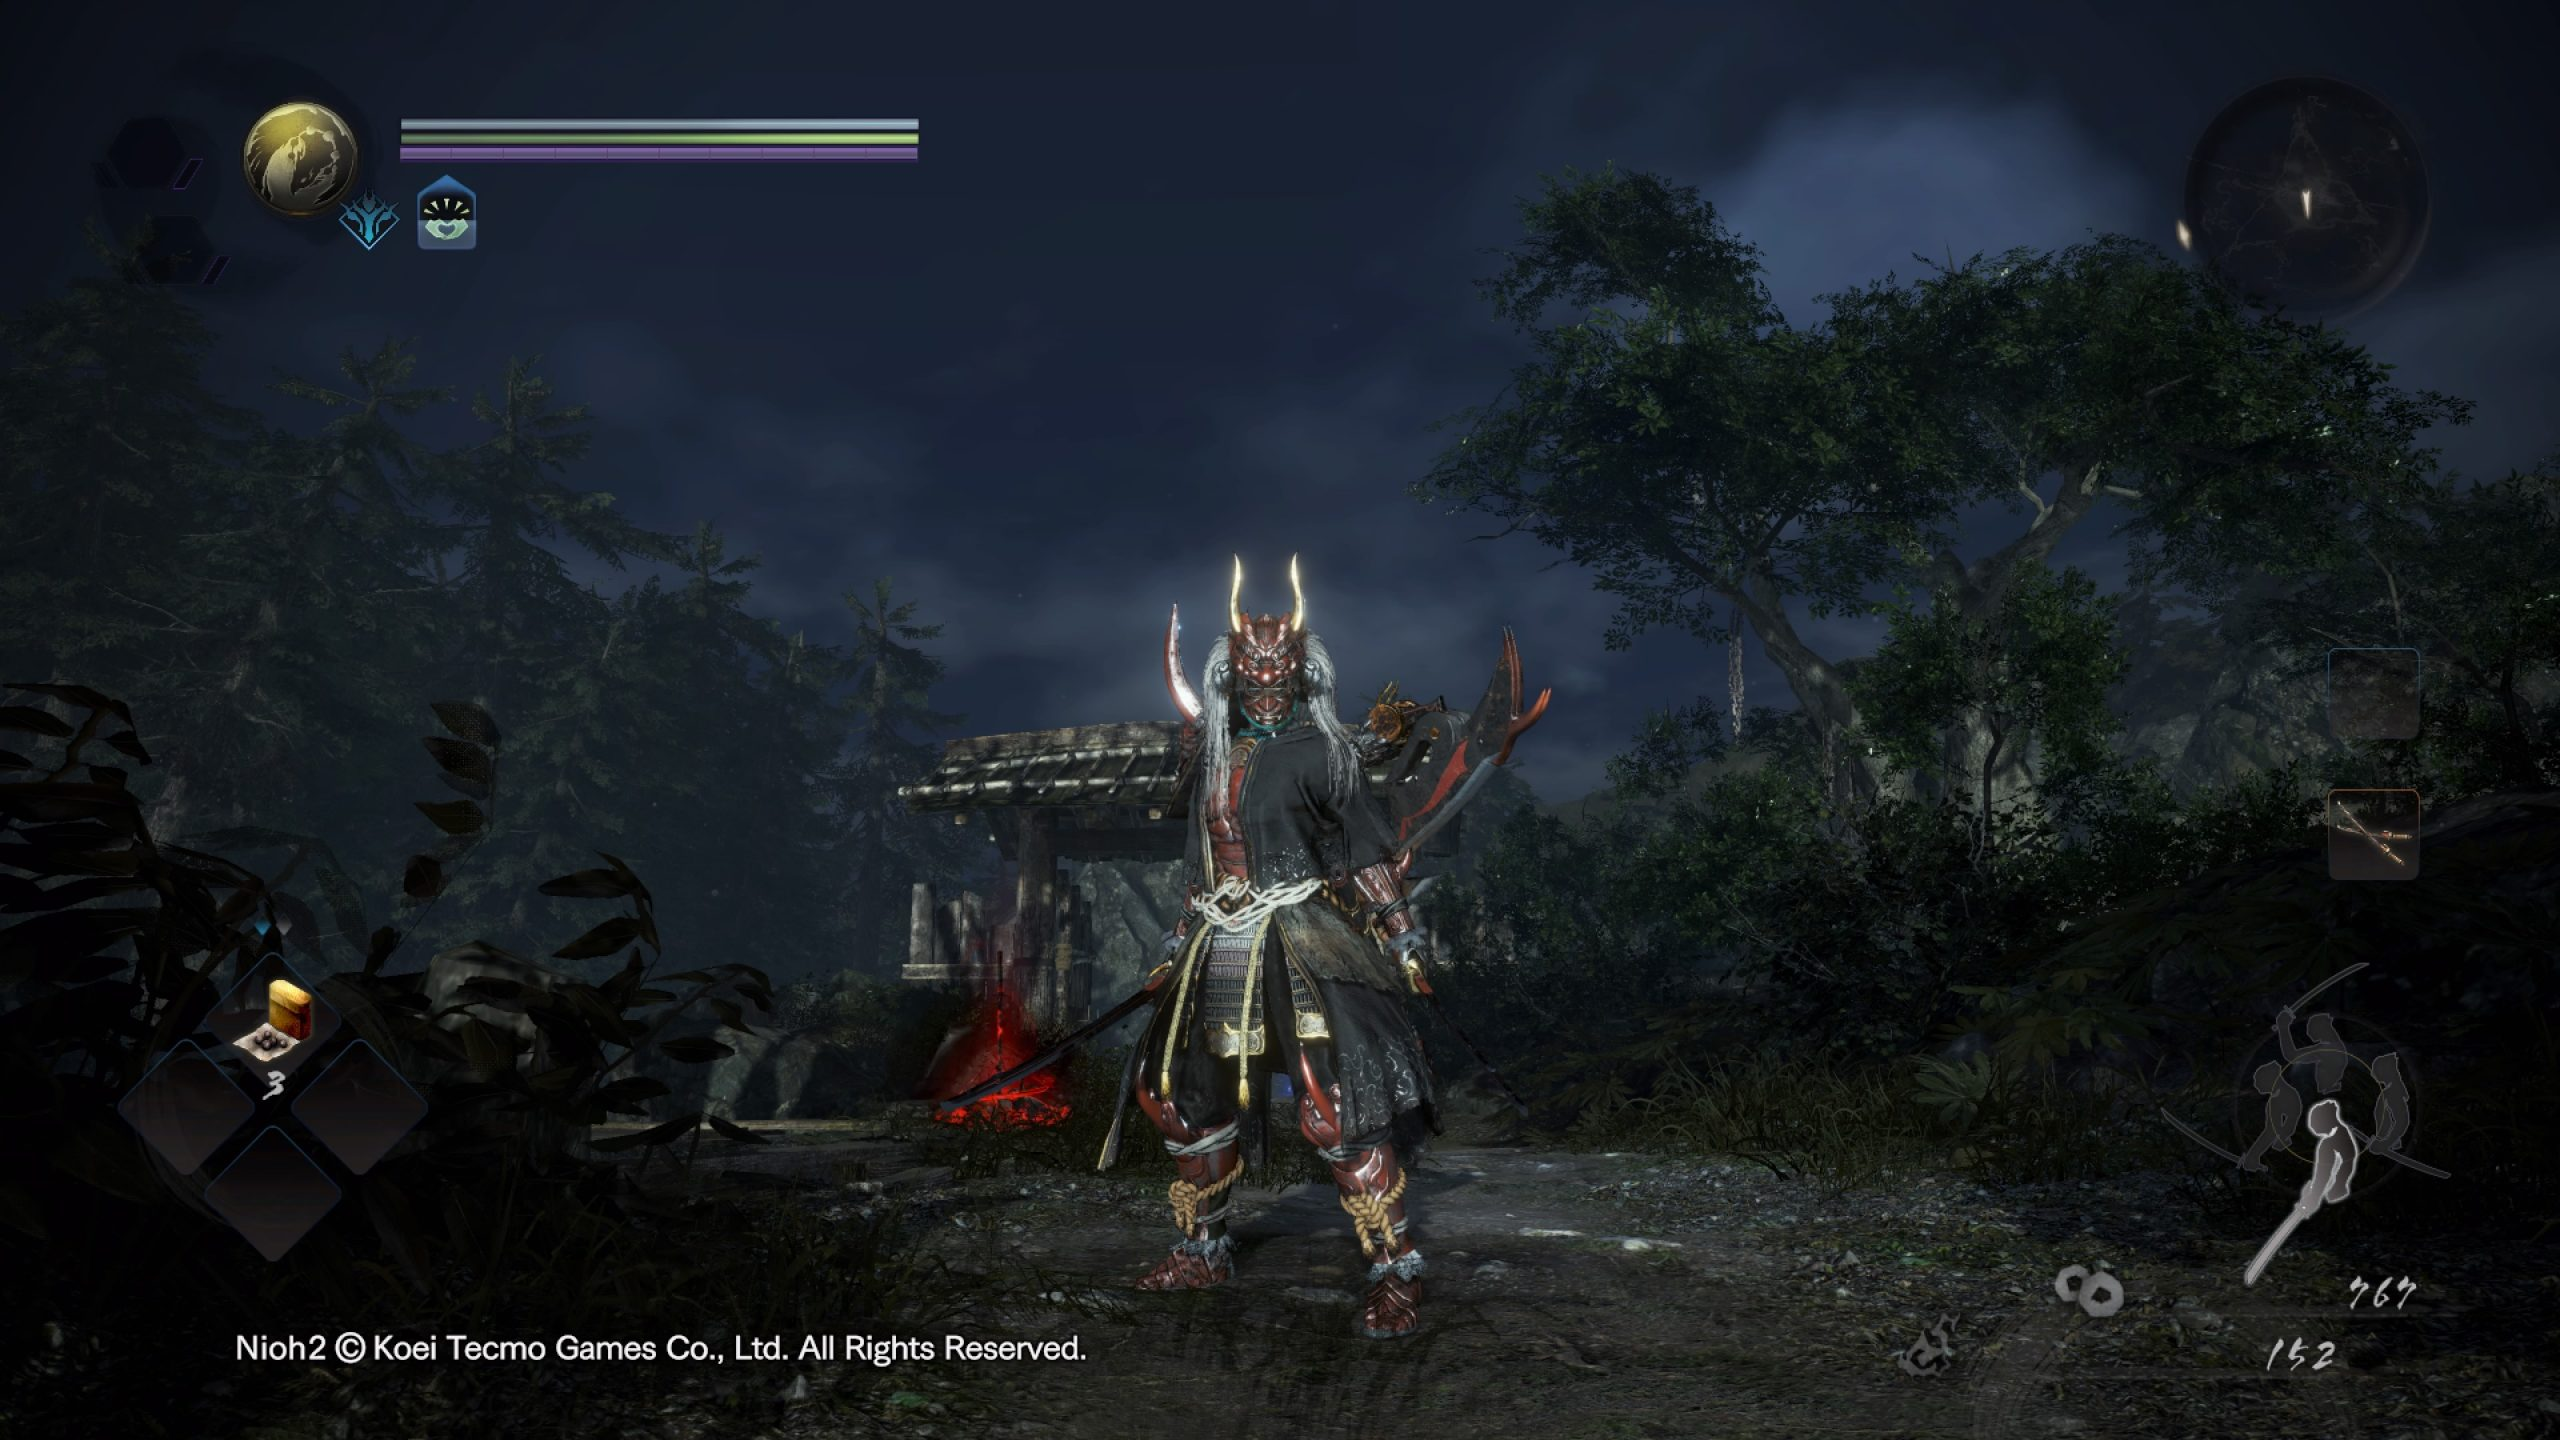 Nioh-2-Remastered-The-Complete-Edition_20210206163513-scaled Mon avis sur Nioh Collection